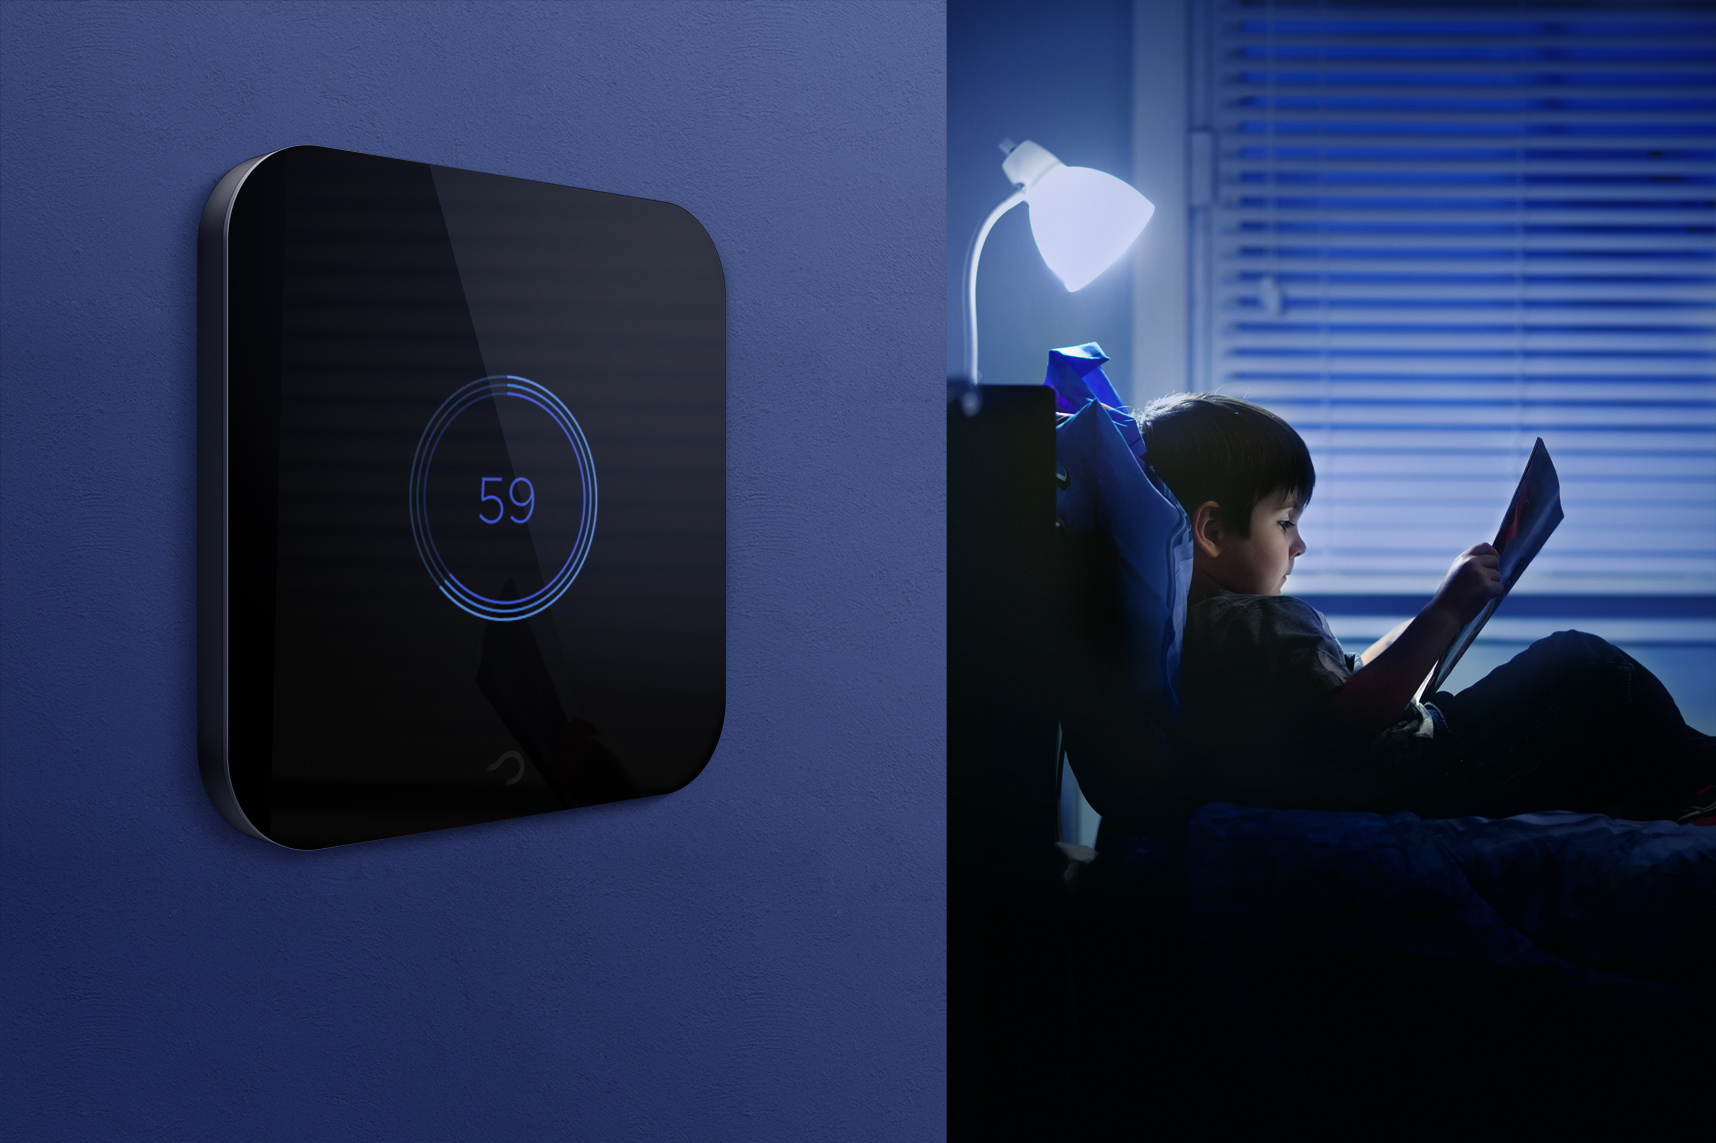 Home Automation Smart Light Enables You To Adjust Lighting Conditions So You Can Sleep Better...